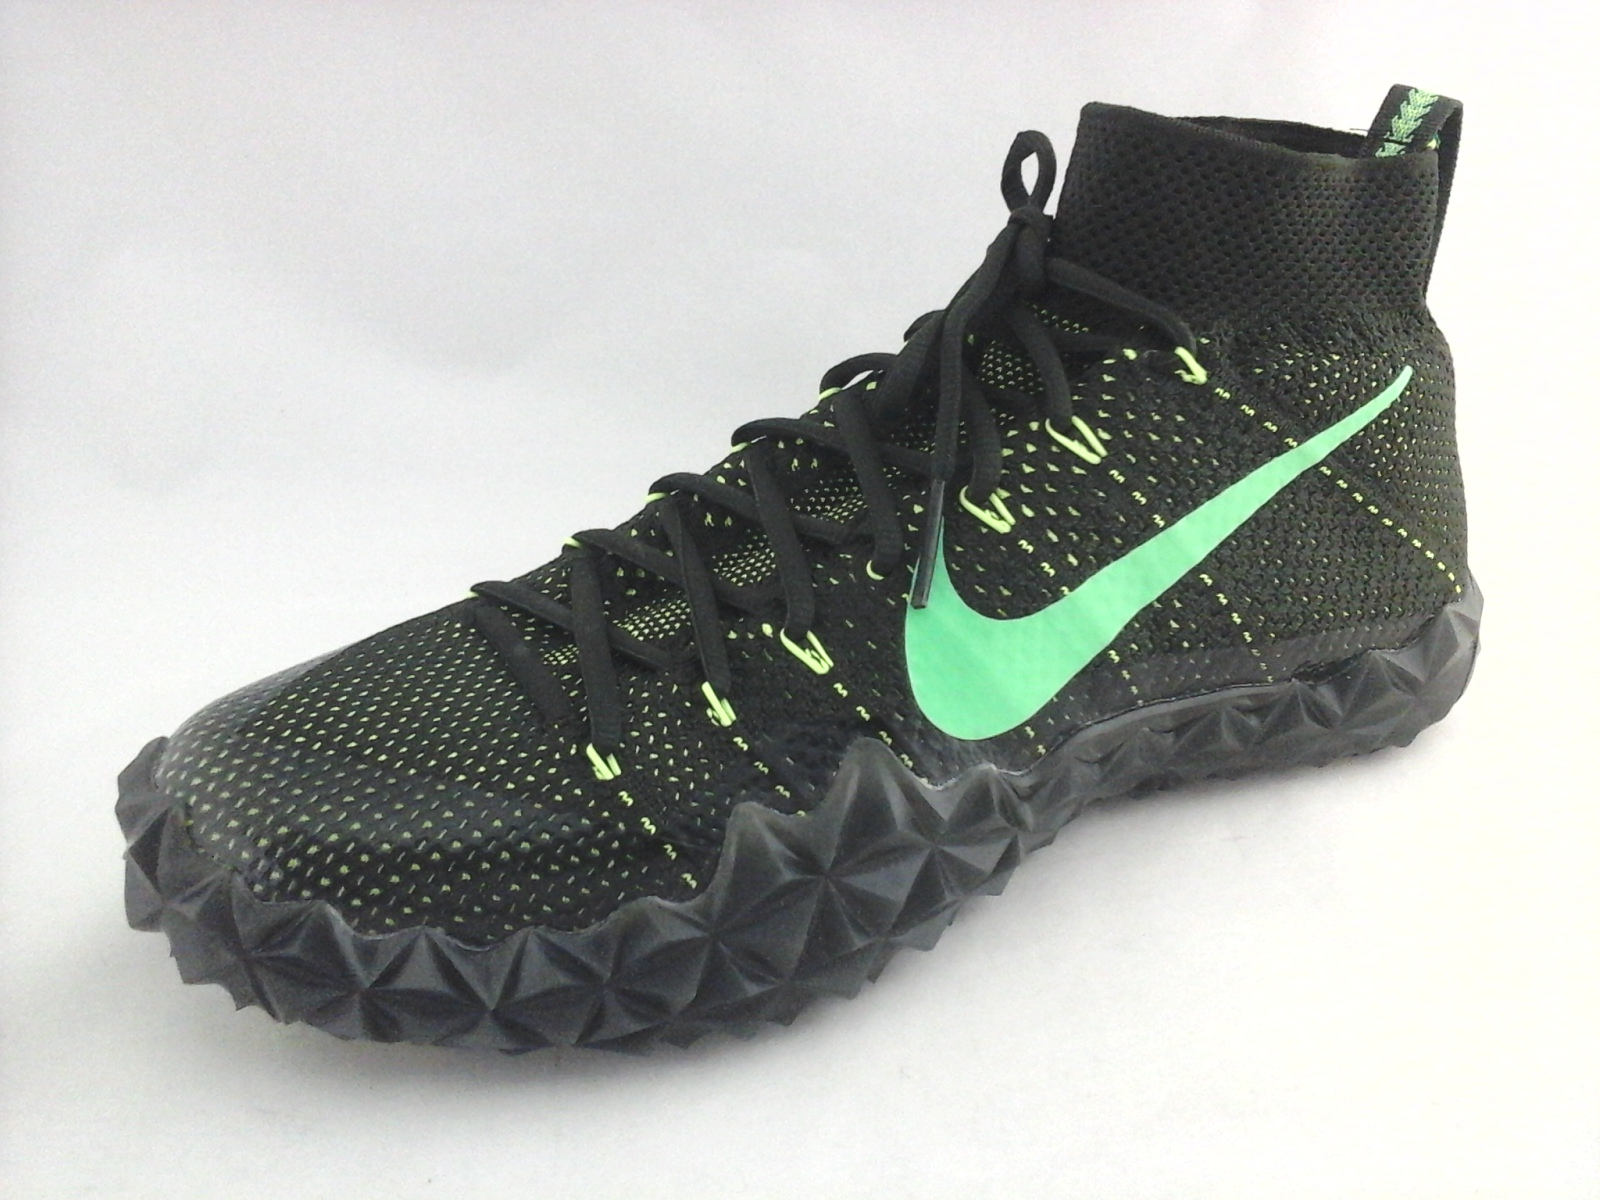 outlet store d3218 b063d Details about NIKE Alpha Sensory Turf Football Cleats Knit 854312-337 Black  Green US 12 46 New